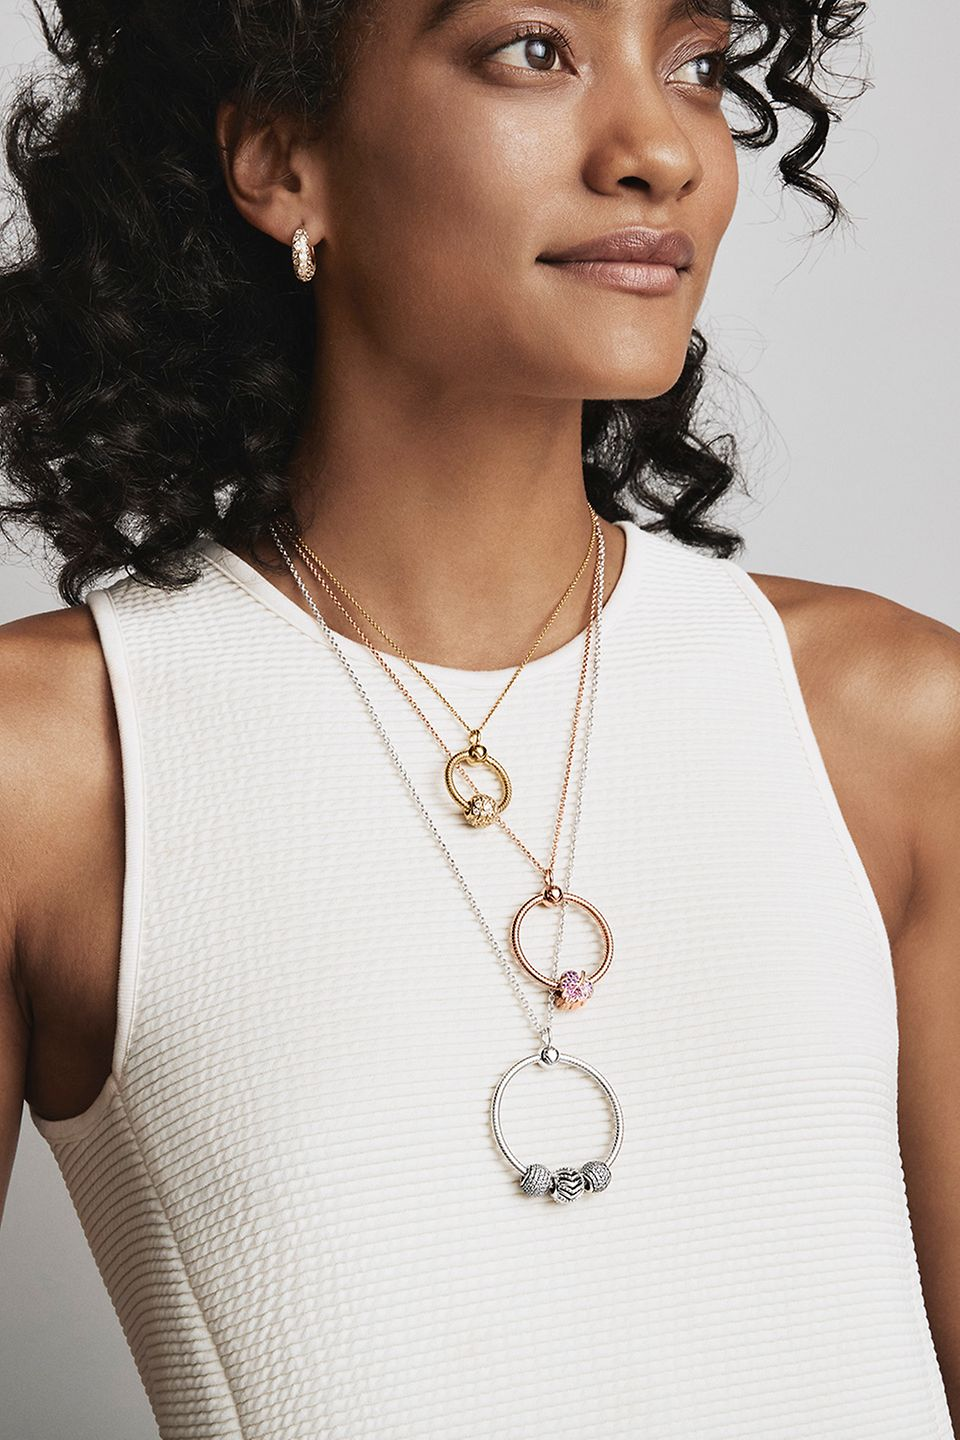 The Pandora Moments O Pendant in three metal finishes and sizes.